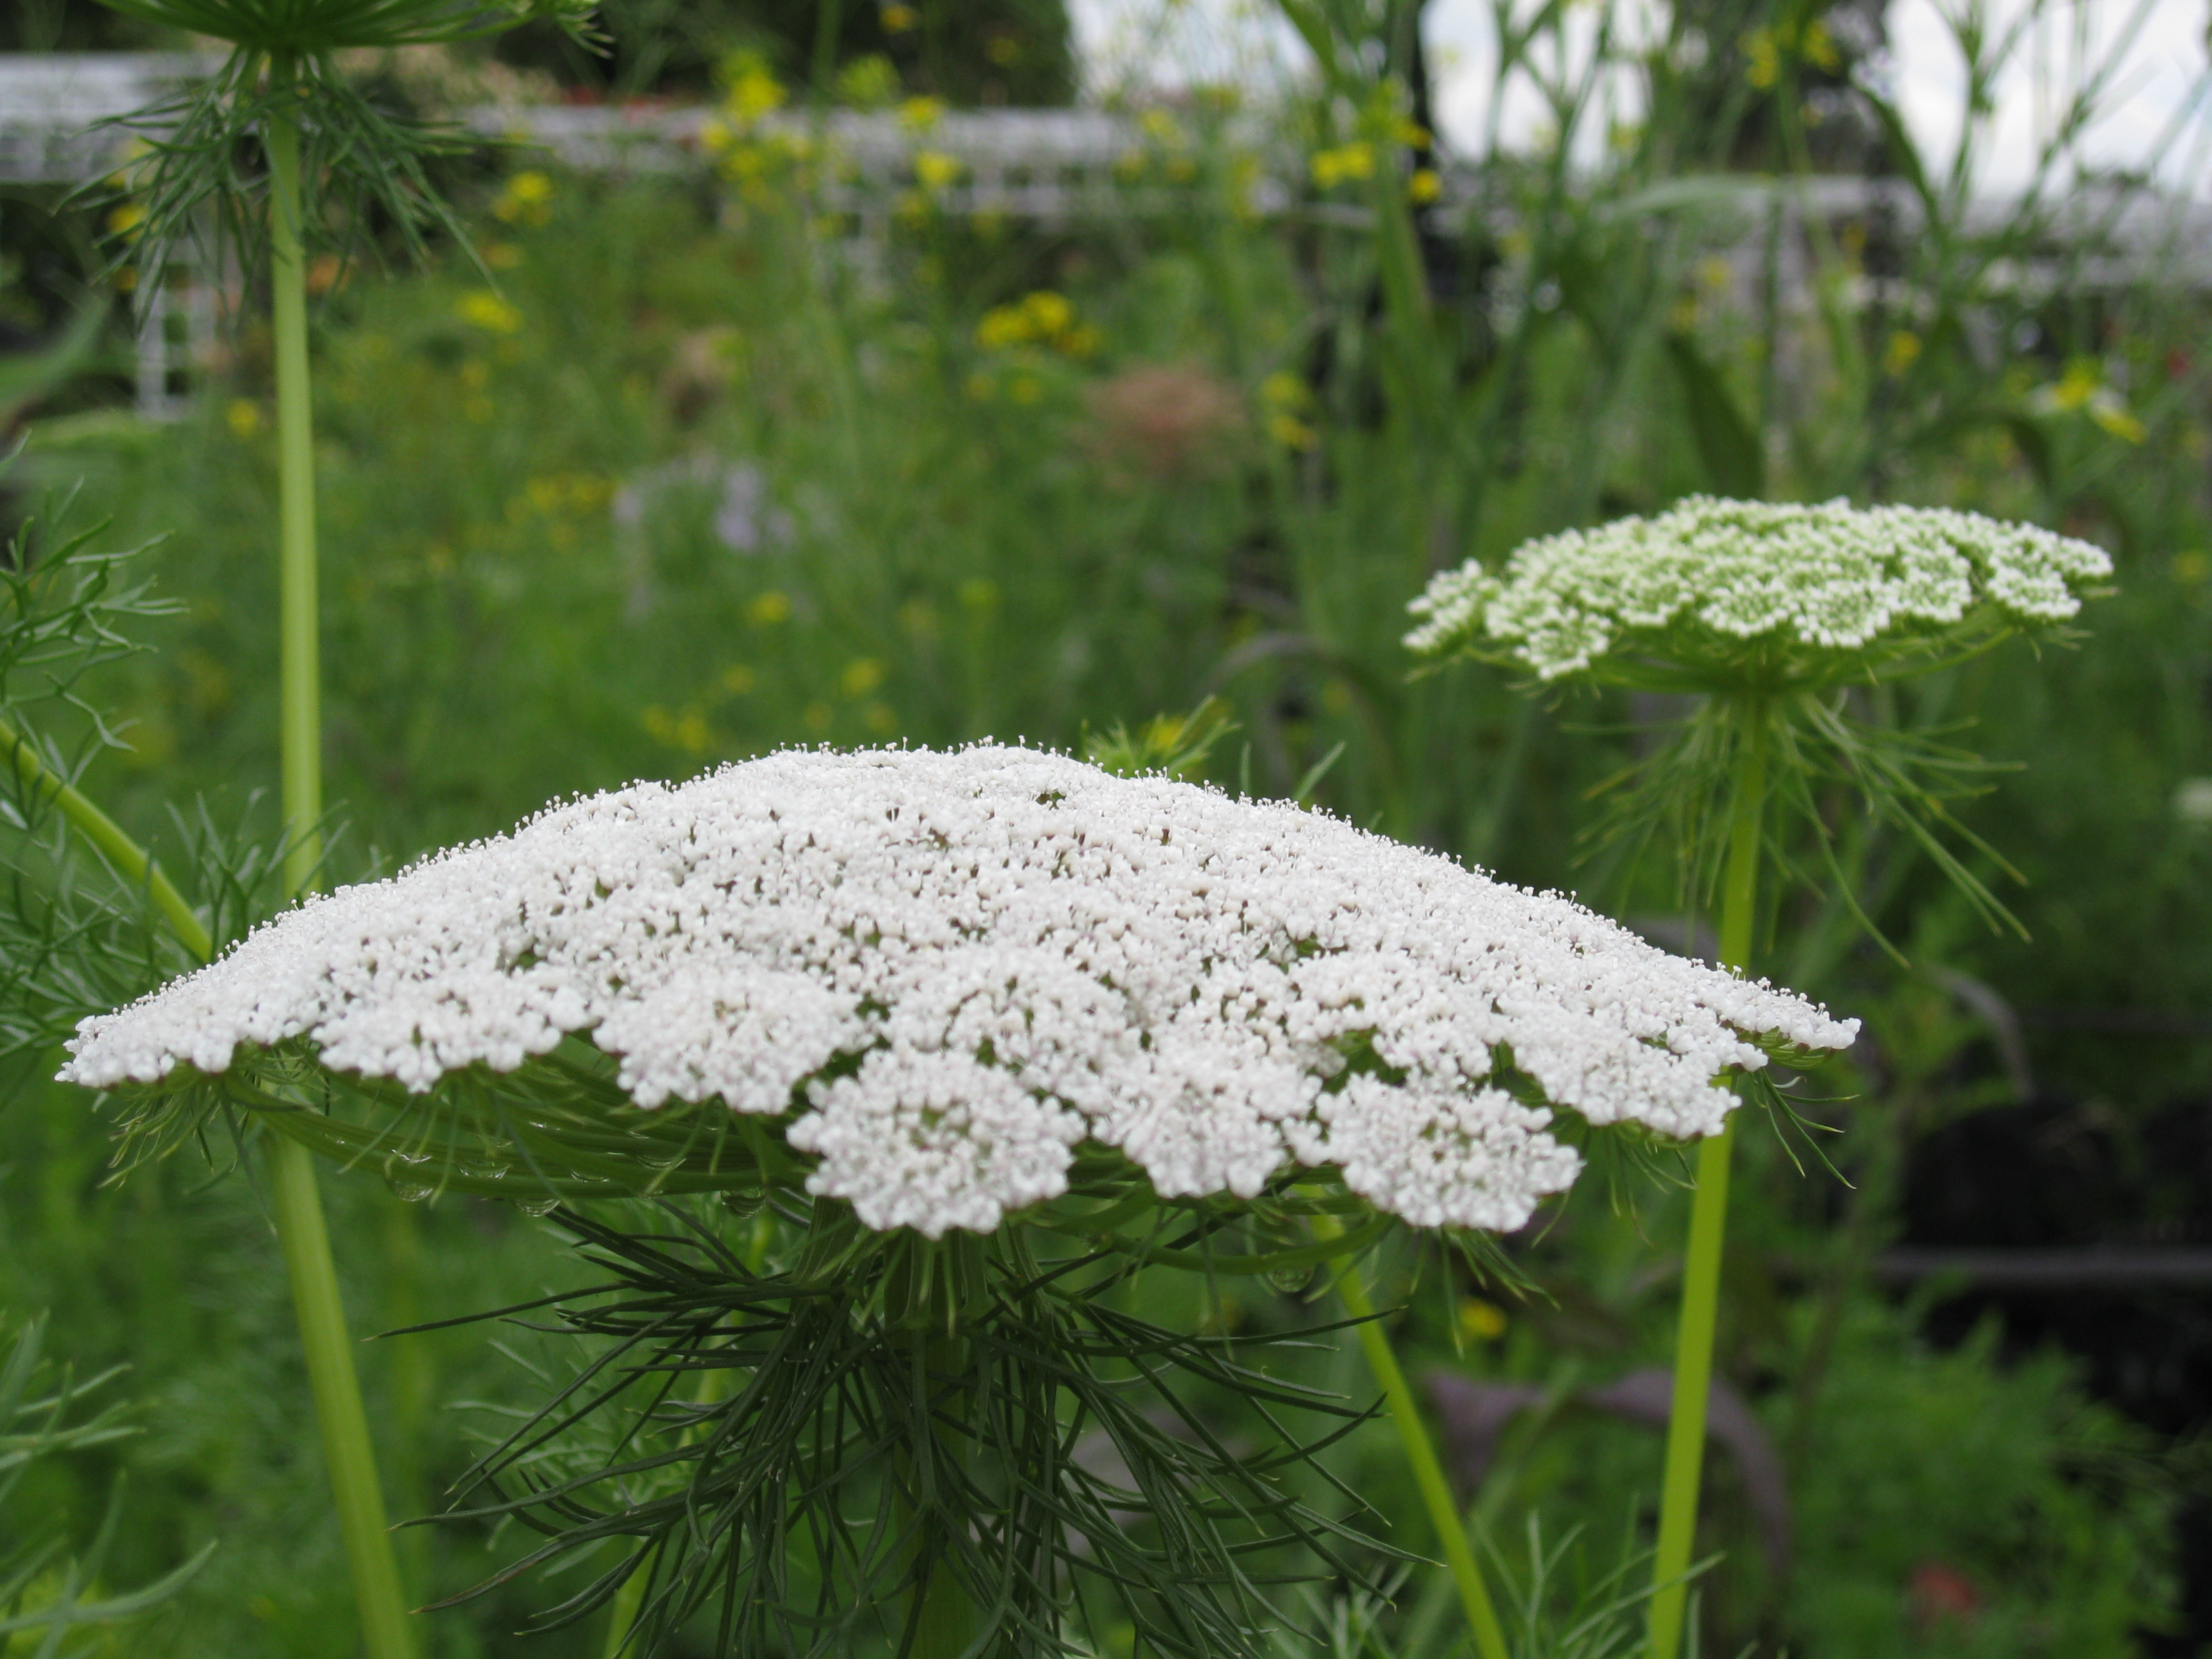 Queen Anne's Lace blossomed at eye-level.